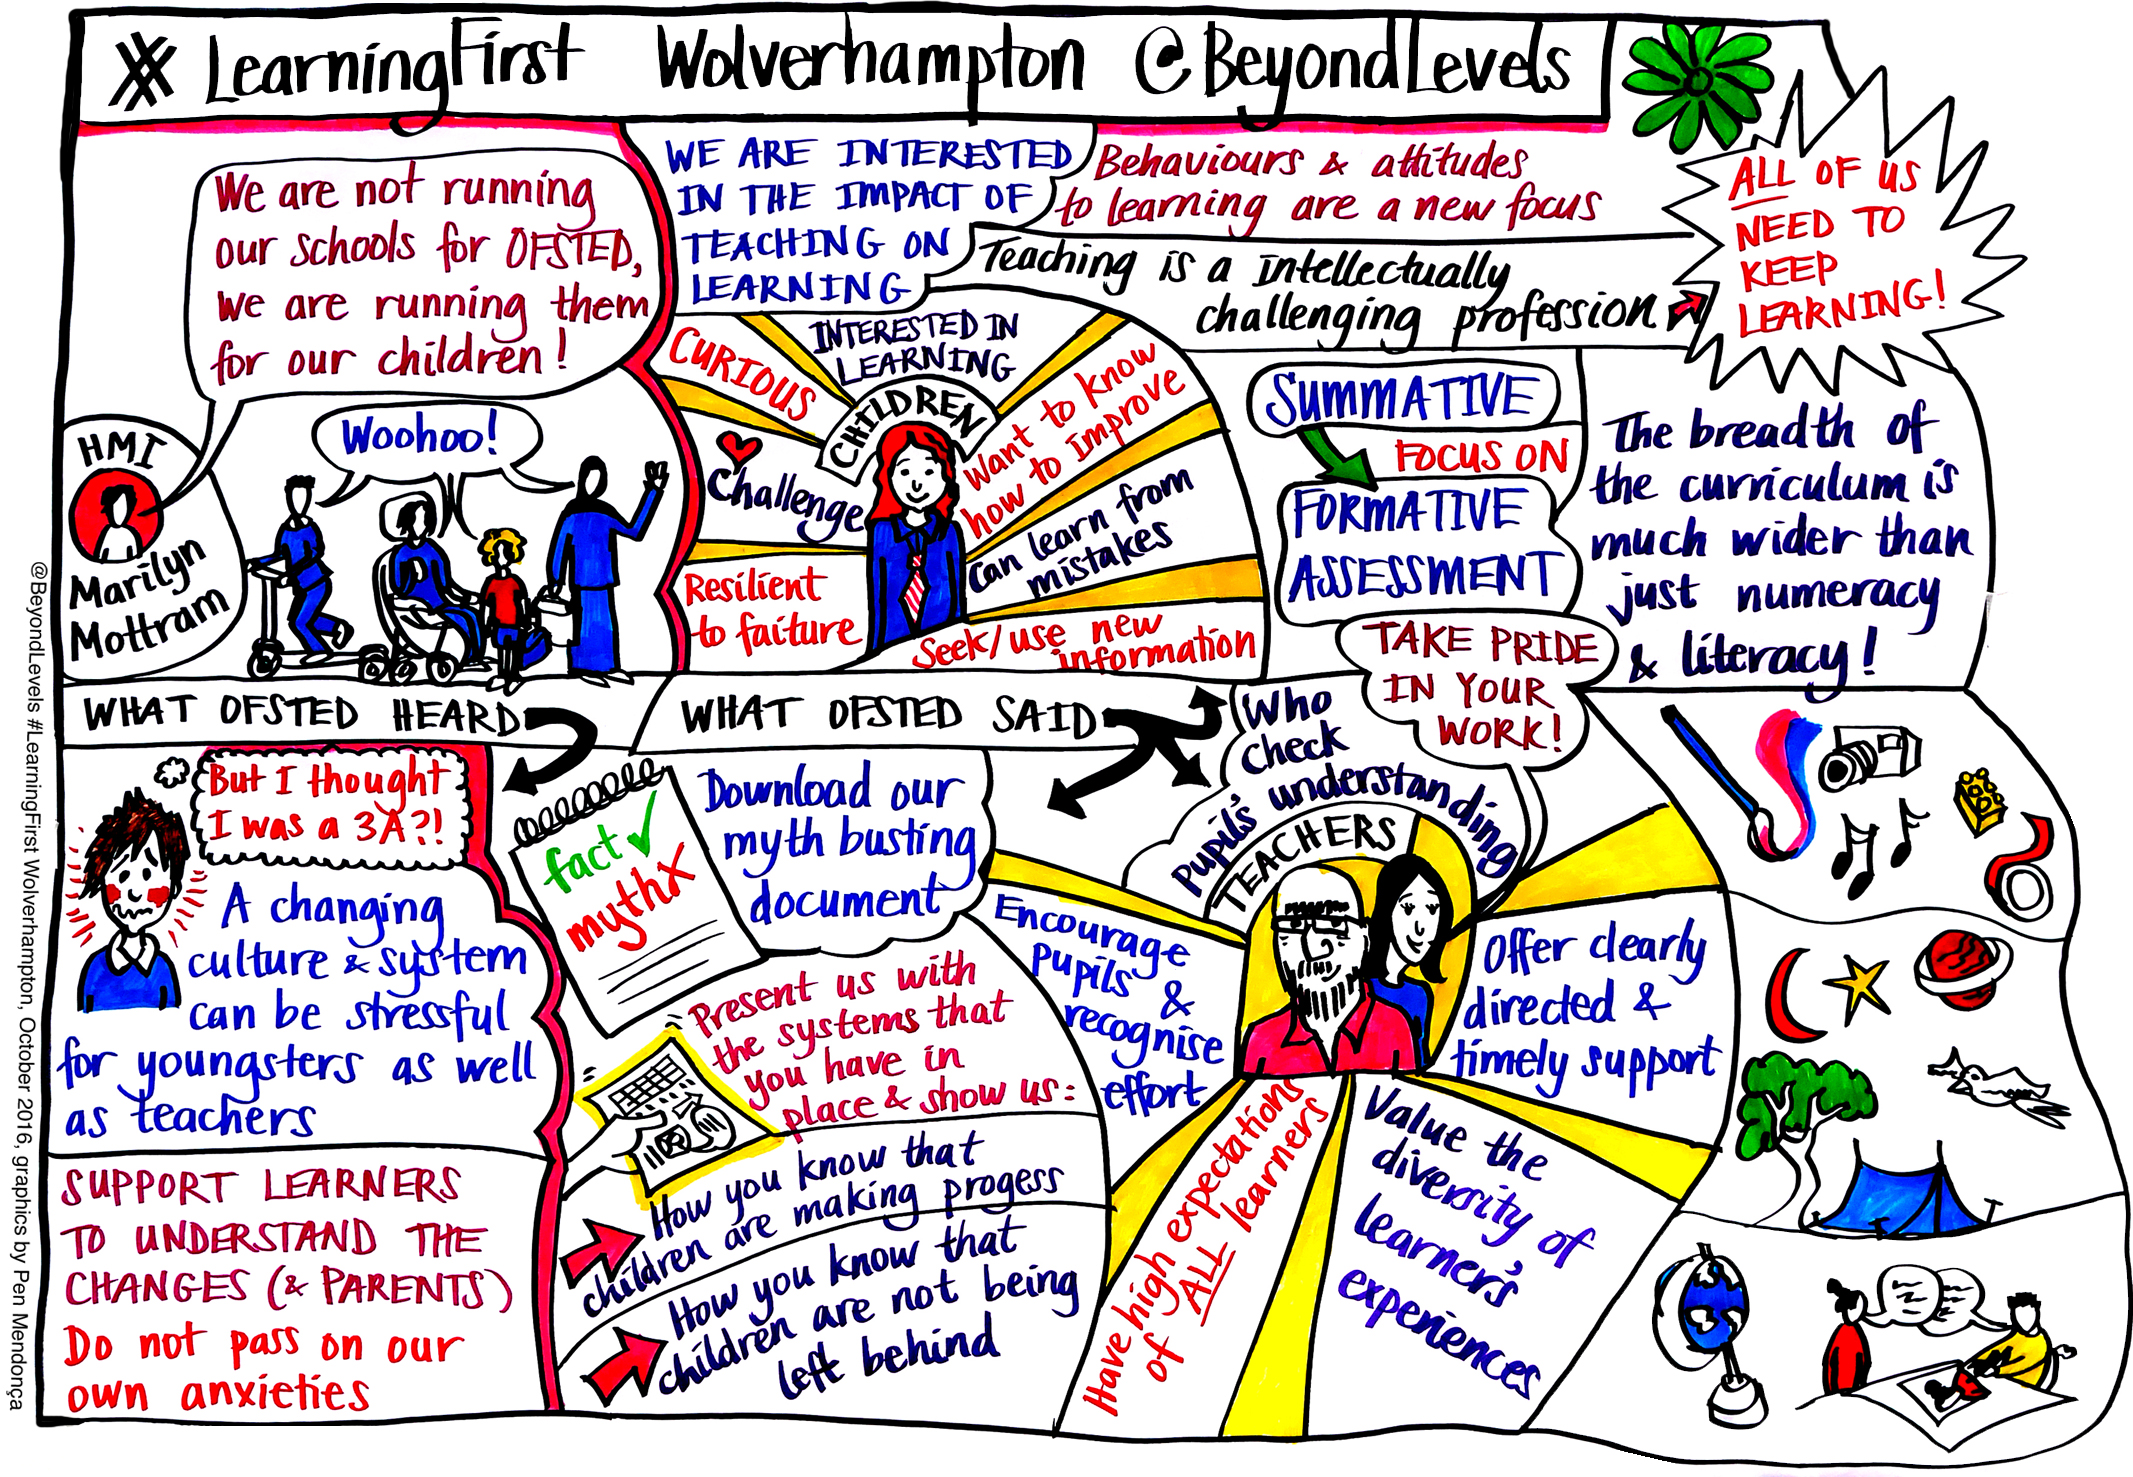 beyondlevelswolvofsted